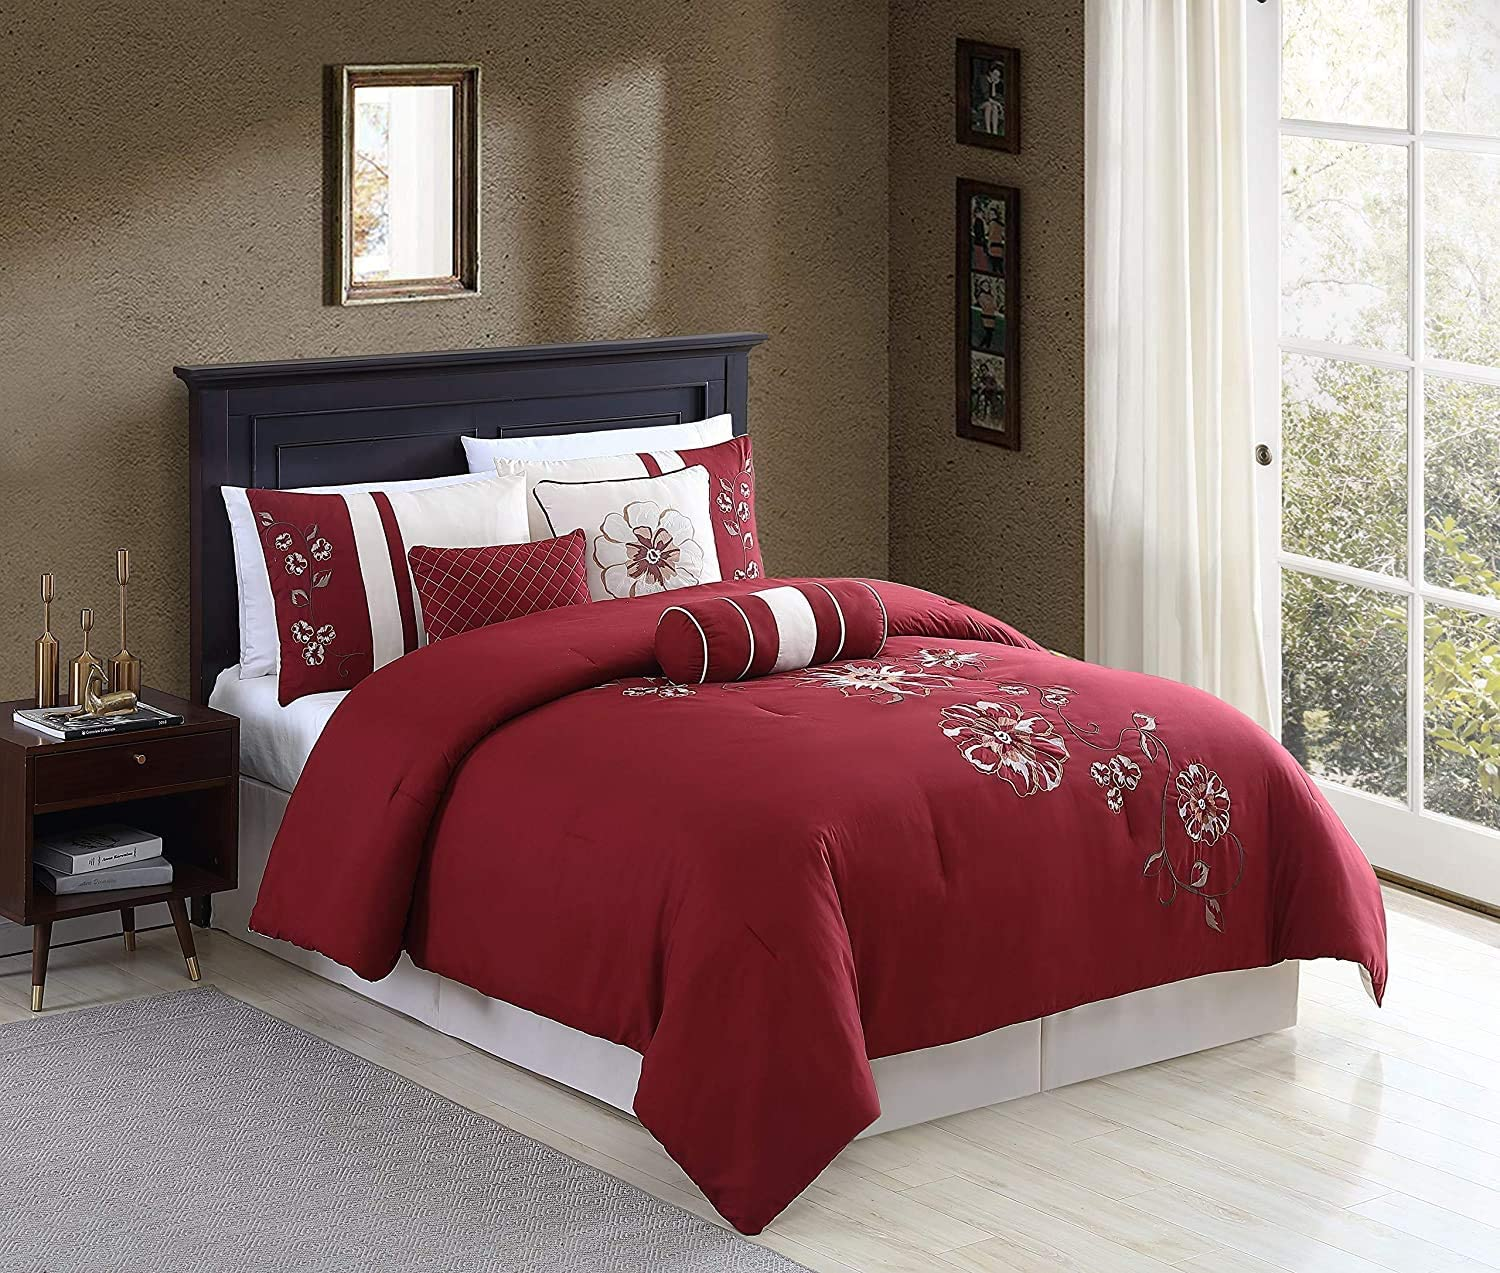 Chezmoi Collection 7-Piece Red Floral Hibiscus Embroidery Beige Comforter Bedding Set